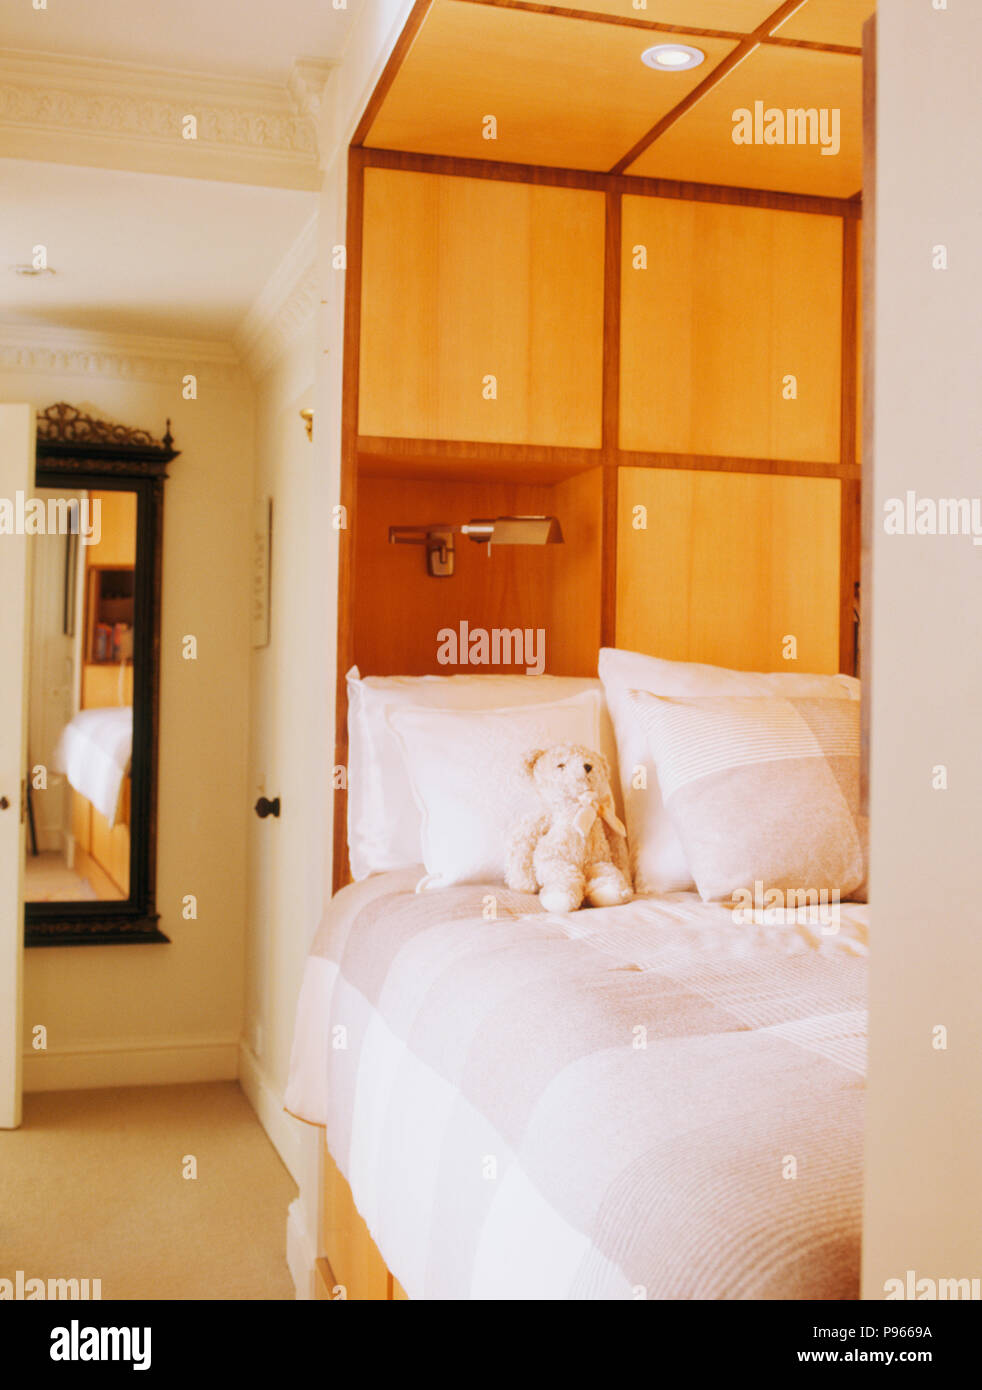 Concealed Storage Above Fitted Bed In Compact Modern Bedroom Stock Photo Alamy